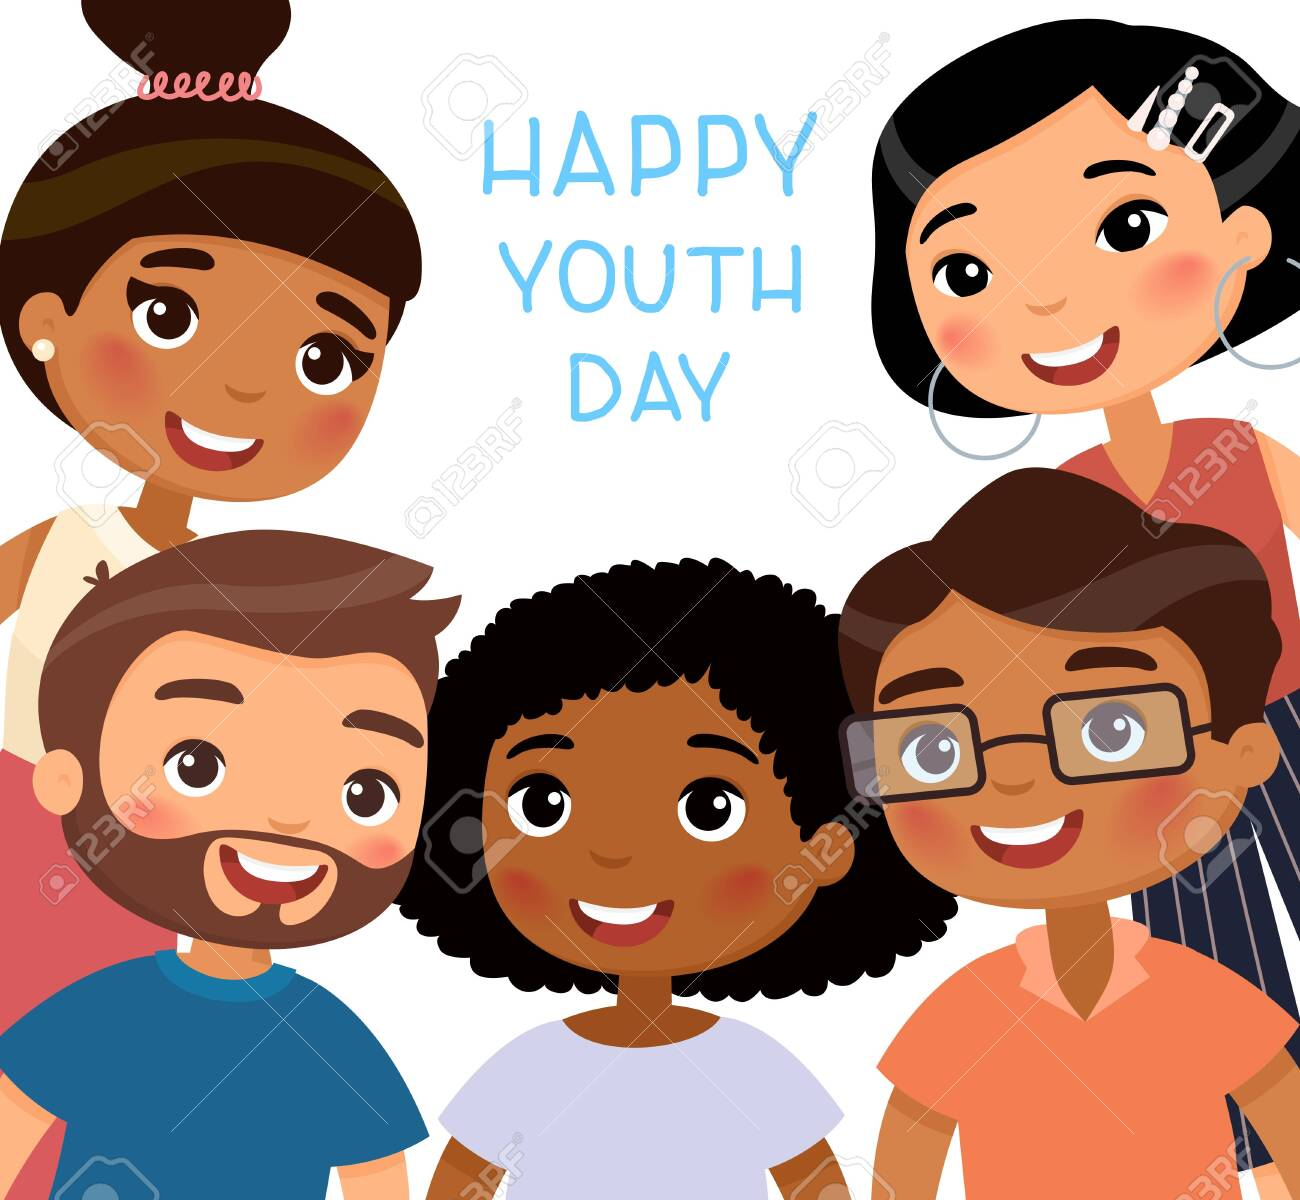 Funny Cartoon Images Of Boys happy youth day. international young girls and young boys friends